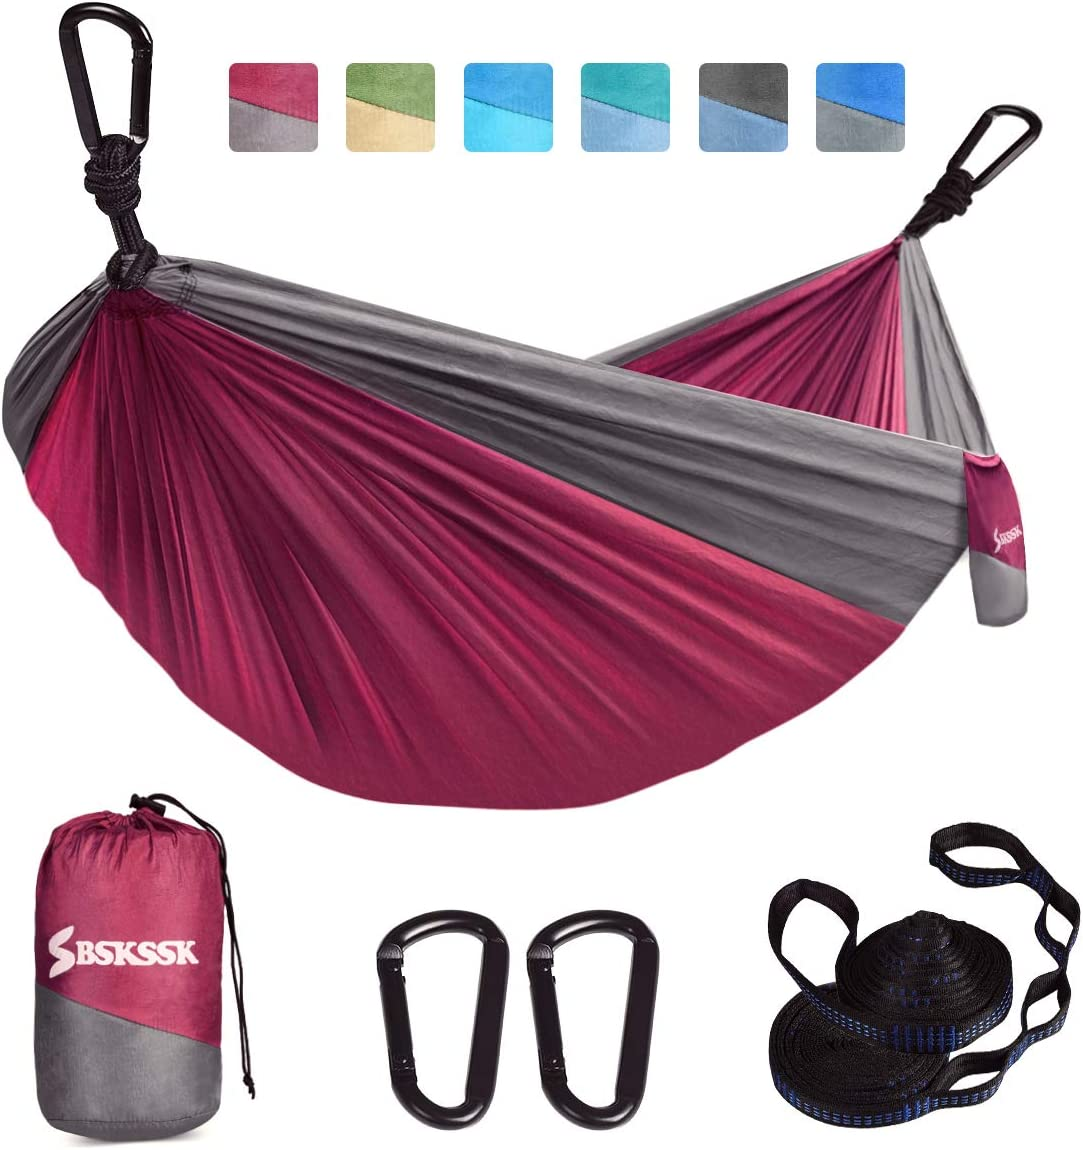 BSKSSK Camping Hammock, Double Single Portable Lightweight Travel Parachute Hammock Swing with 2 Tree Straps 2 D-Shape Carabiners for Indoor Outdoor Backpacking, Beach, Yard, Hiking and Garden